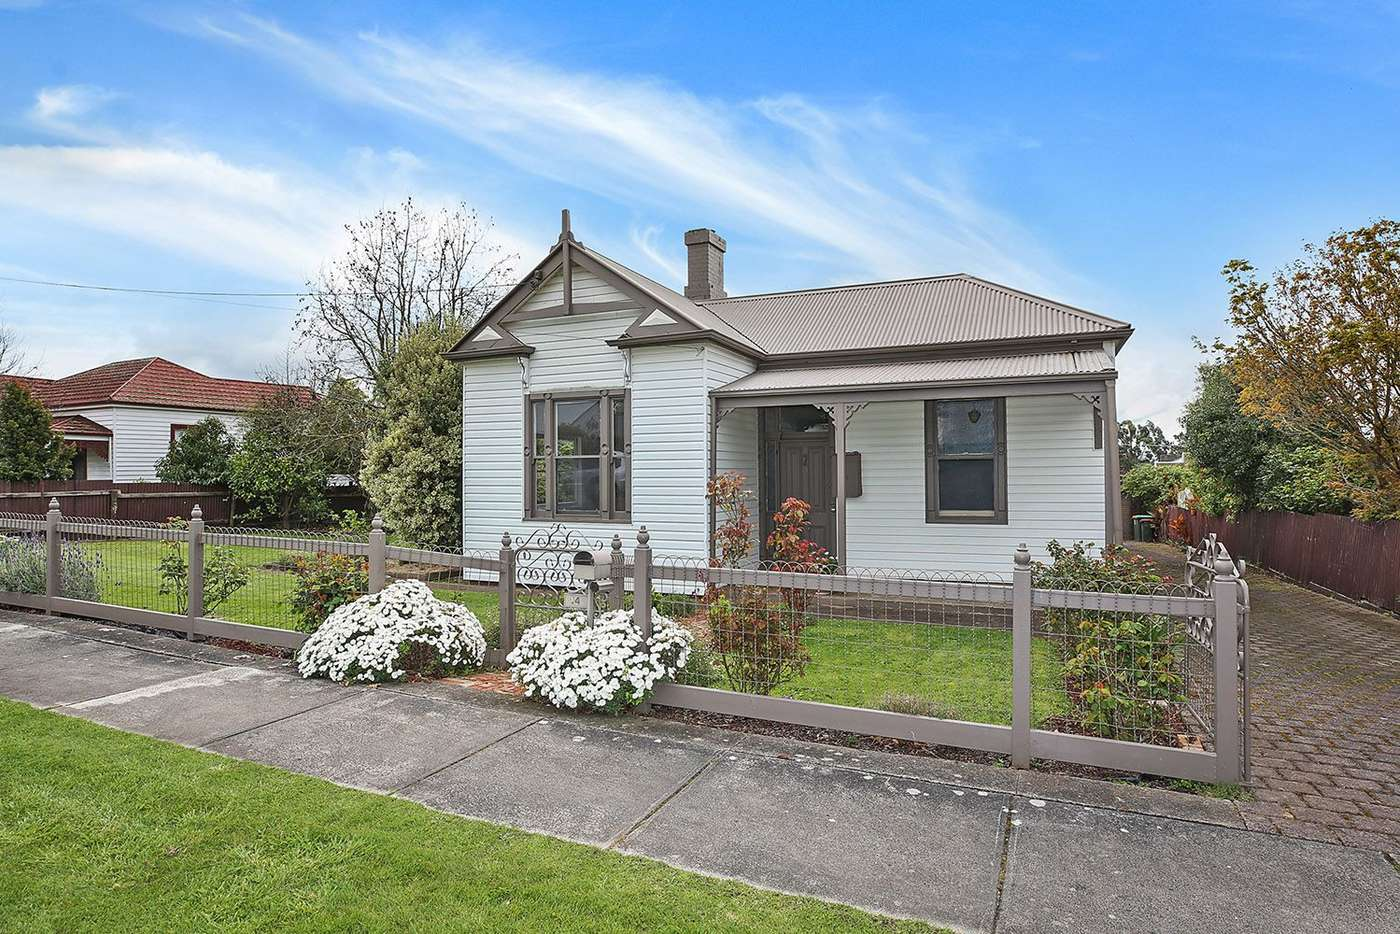 Main view of Homely house listing, 14 Hopetoun Street, Camperdown VIC 3260